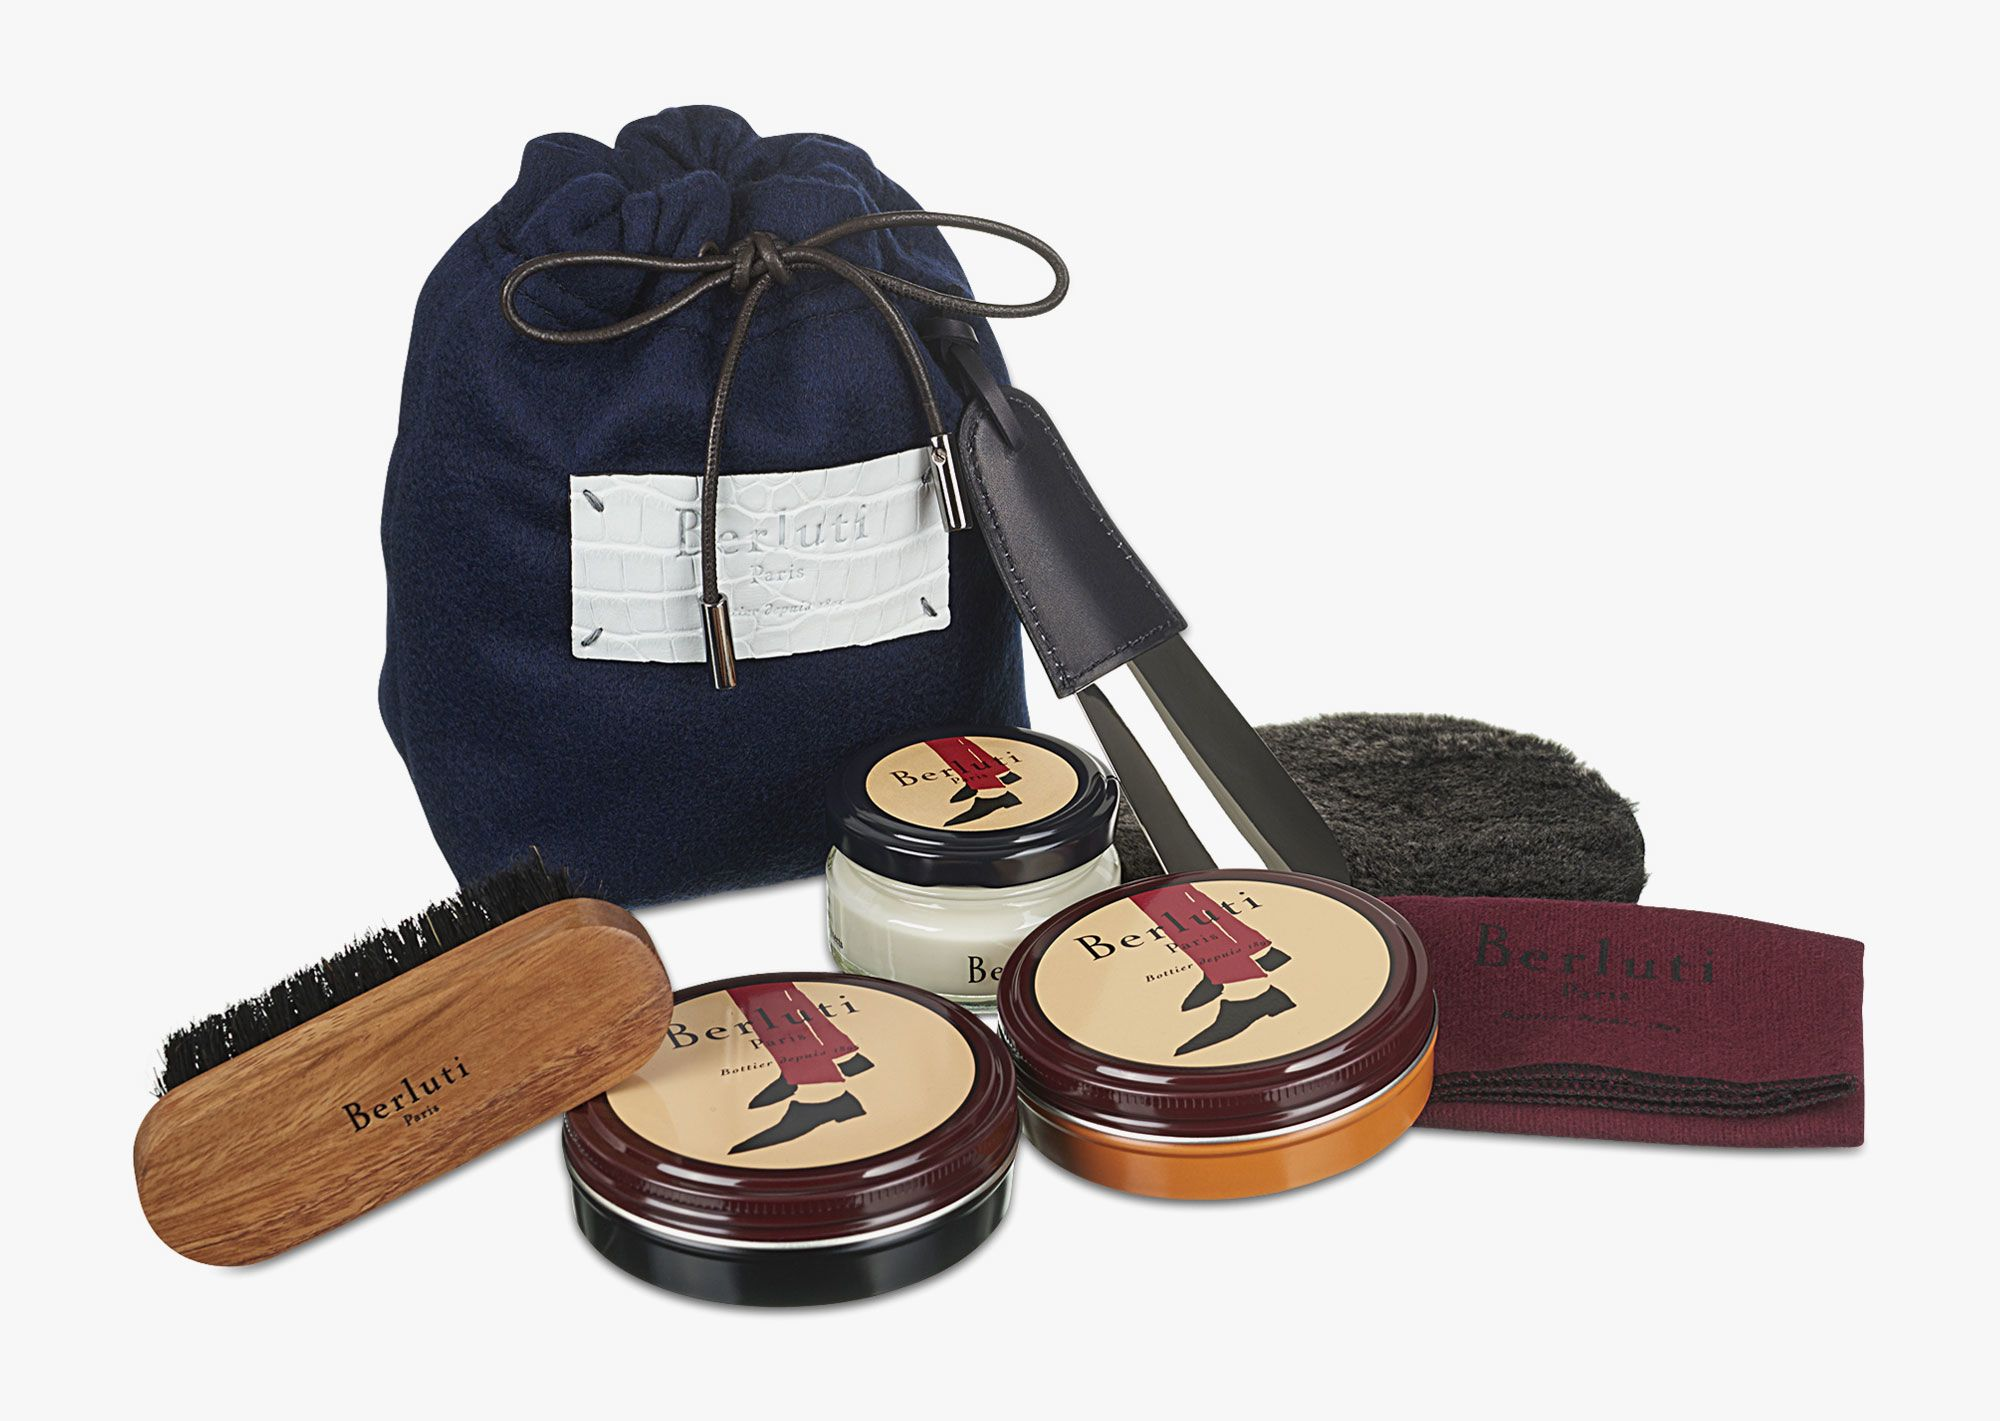 care-kit-pouch-cashmere-with-alligator-details-naturale-berluti_01